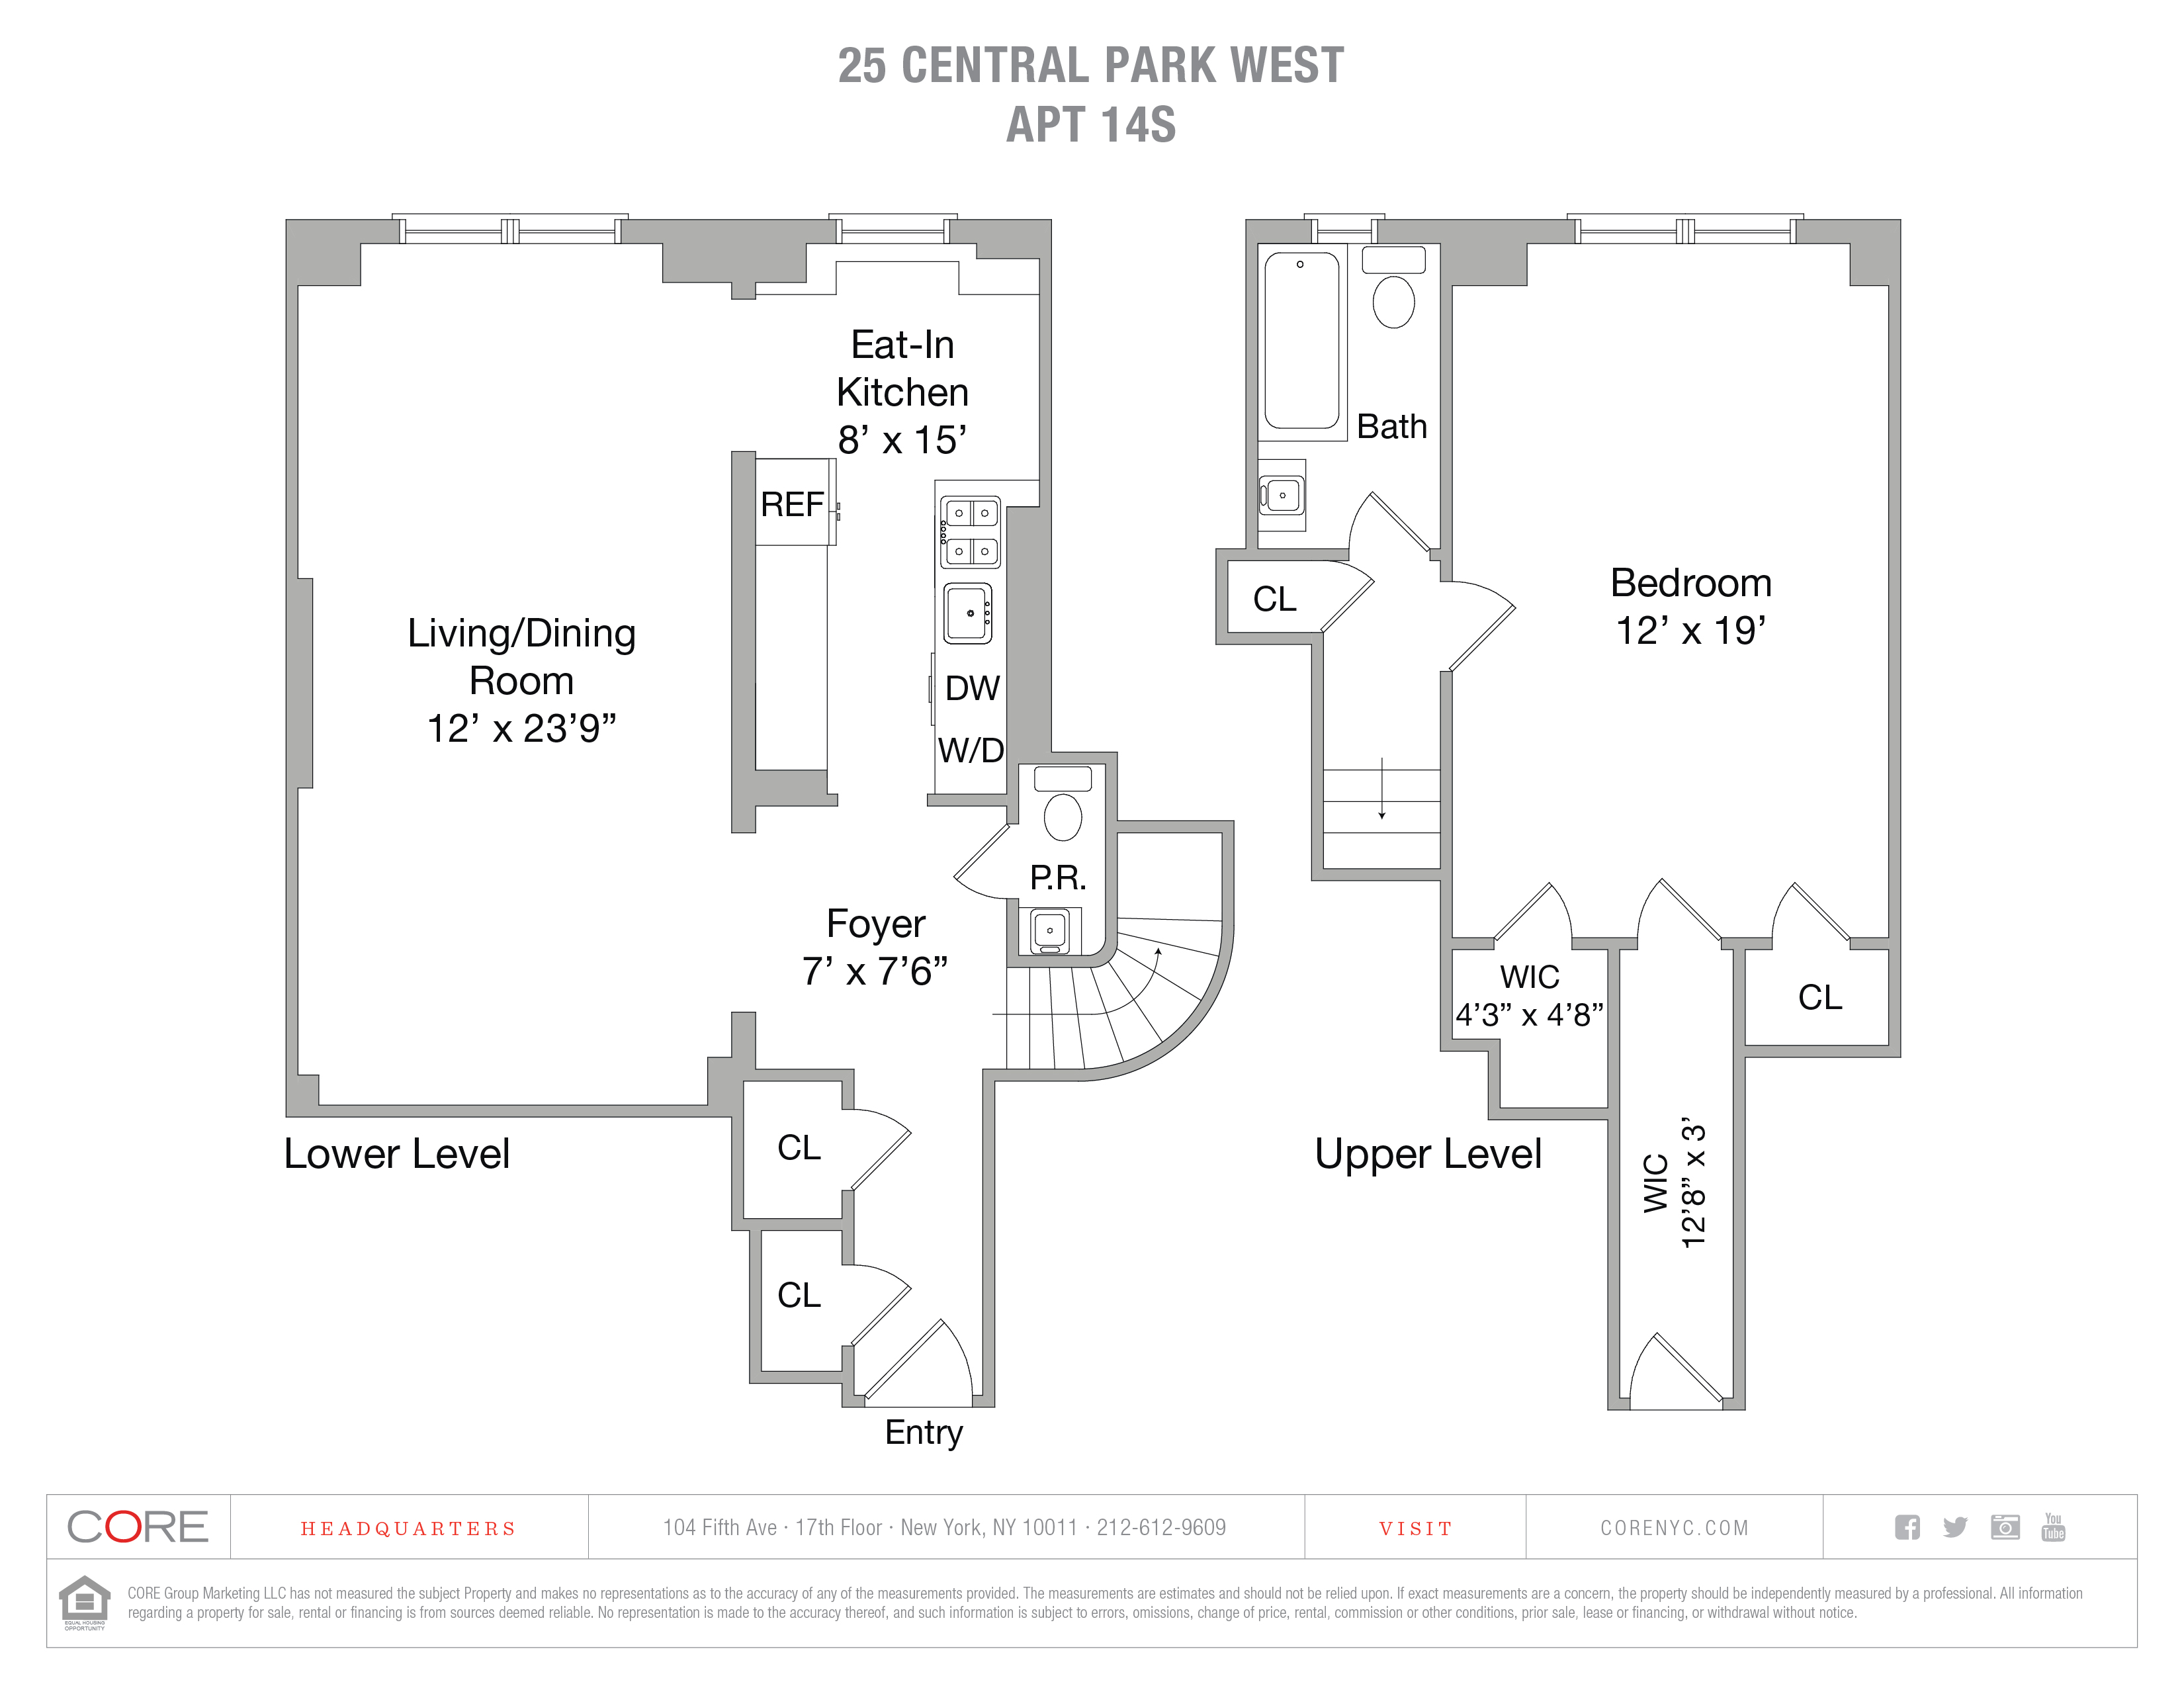 25 Central Park West 14S, New York, NY 10023